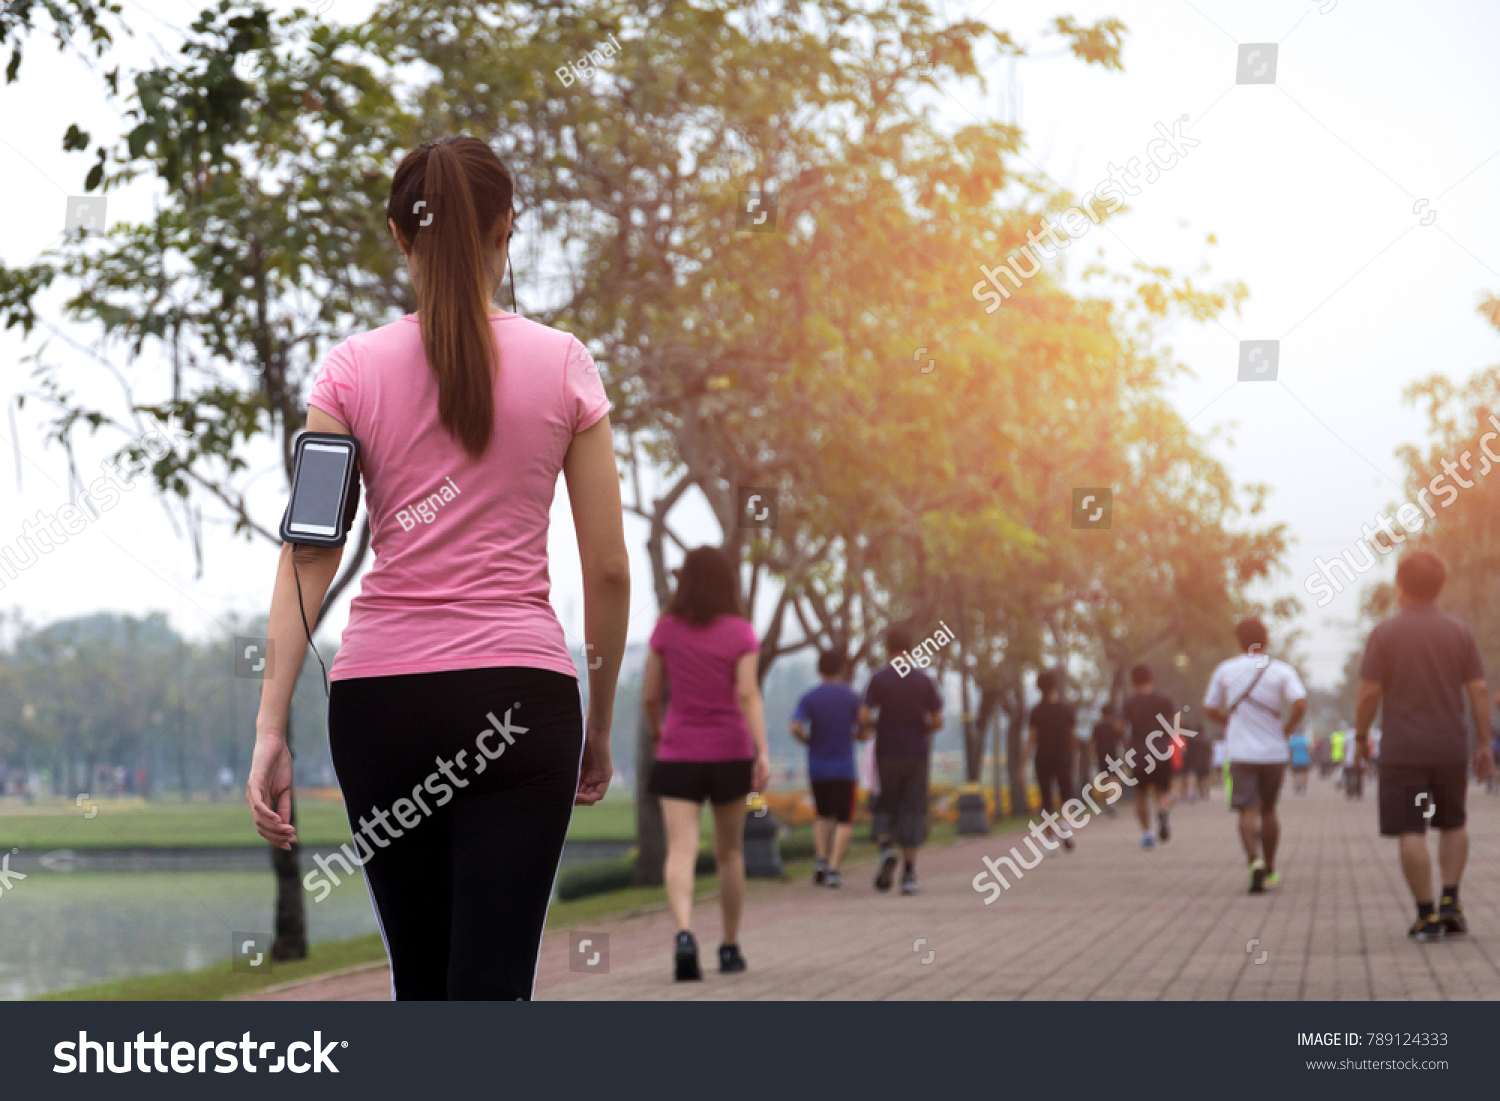 Group of people exercise walking in the park in morning